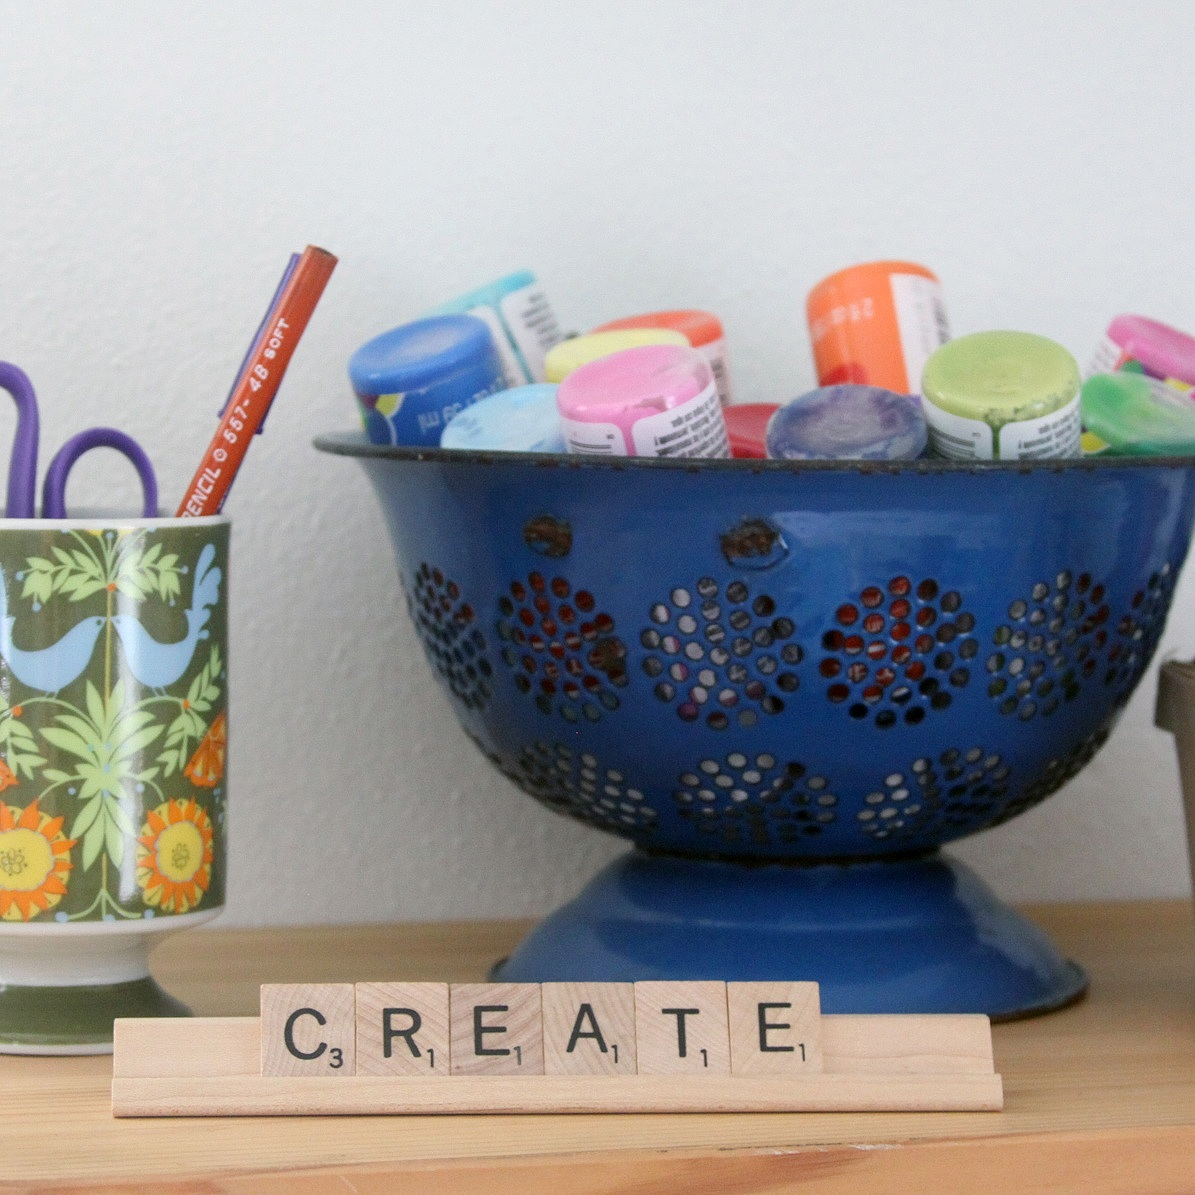 %22Create%22%3A+a+message+with+Scrabble+tiles+on+a+shelf+in+my+studio